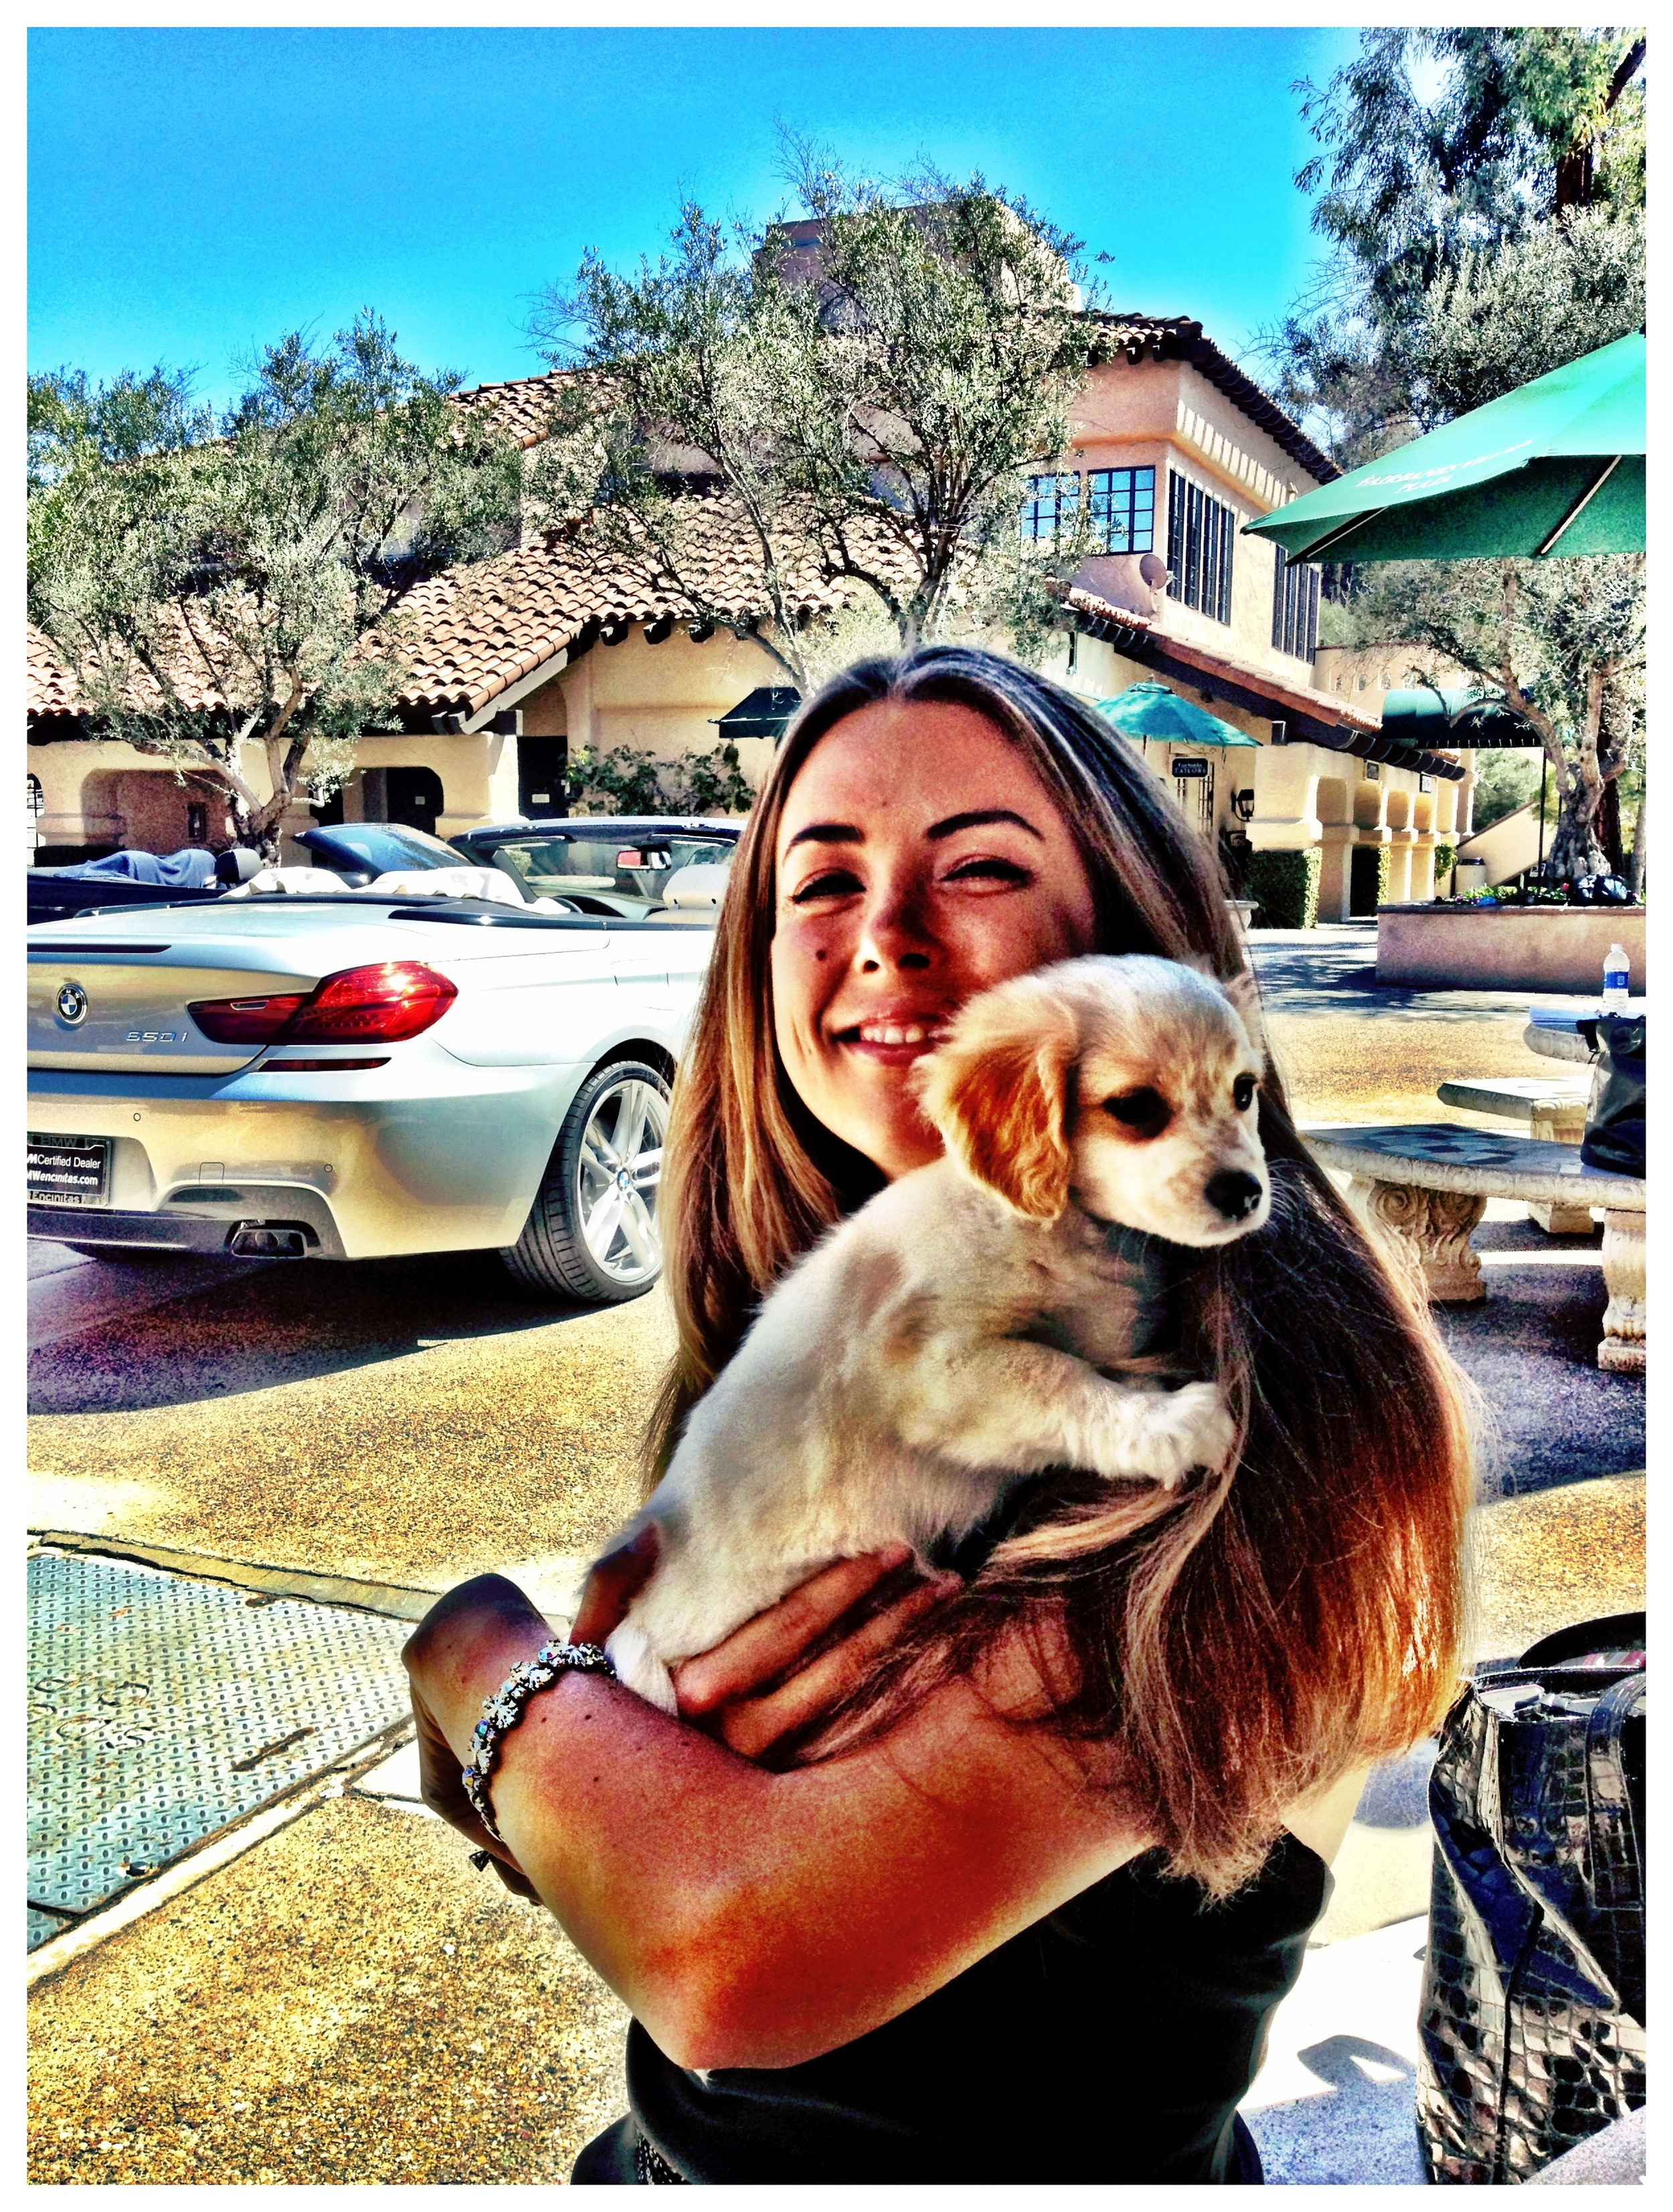 SKY's Amber cuddles with a puppy while volunteering for the Helen Woodward Animal Center.